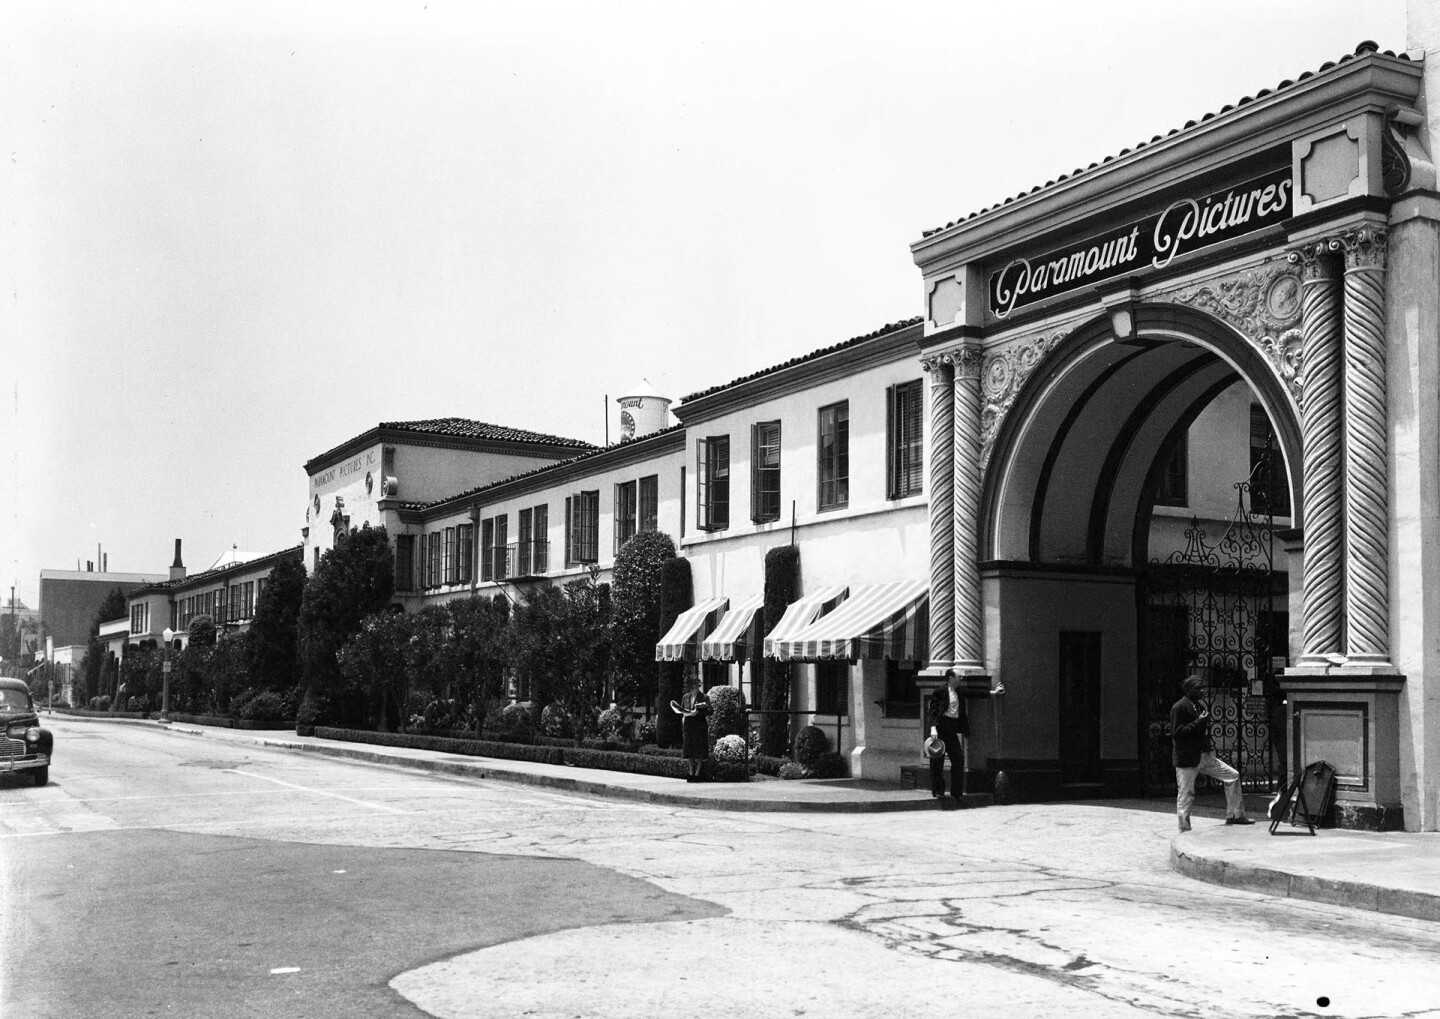 Paramount Pictures entrance, 1940